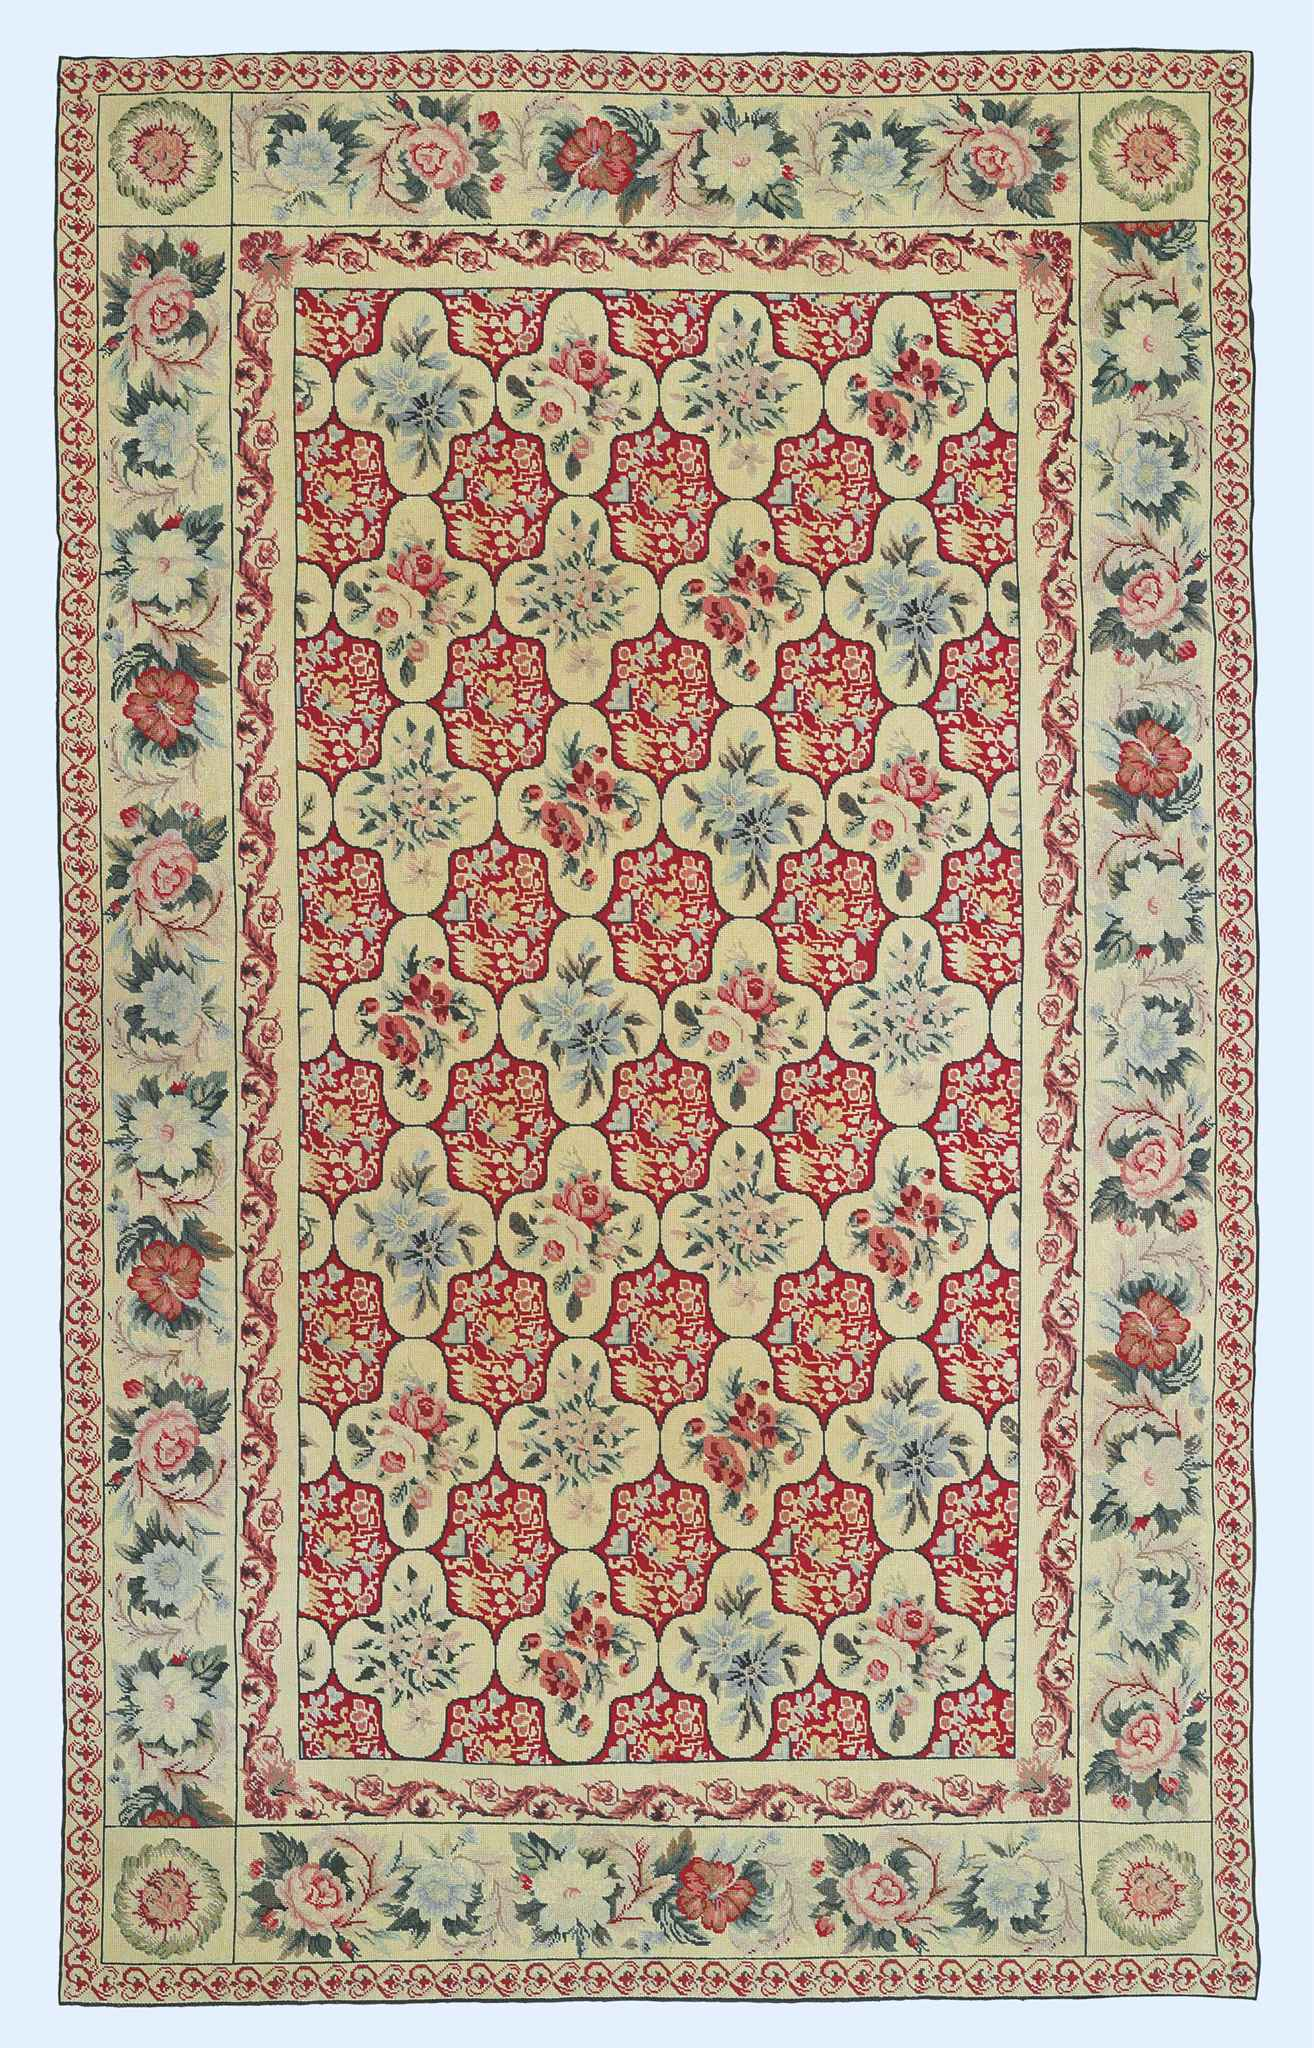 A CHINESE NEEDLEPOINT CARPET